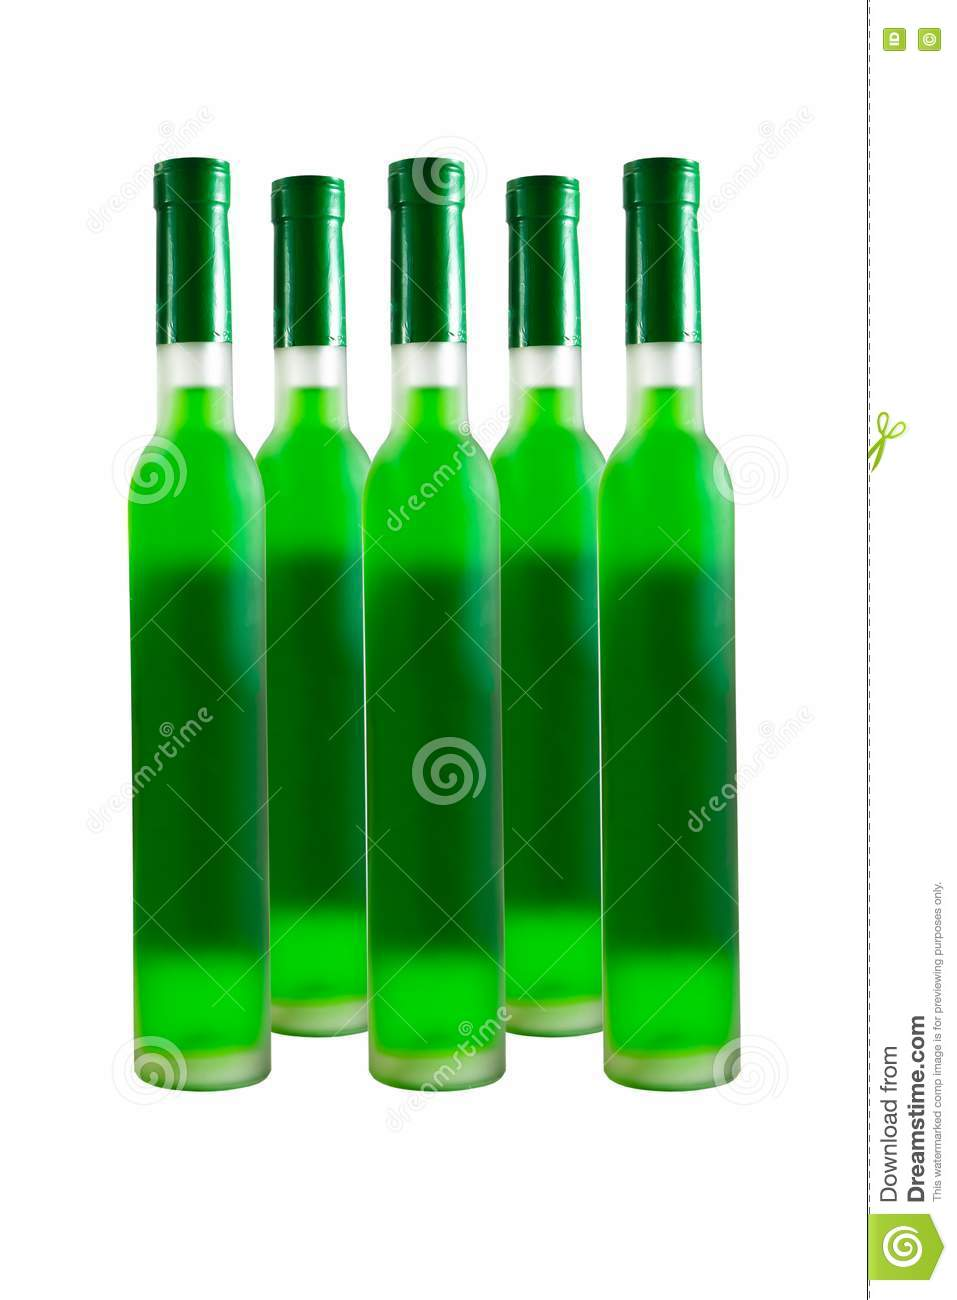 Green wine bottle royalty free stock photography image for Green wine bottles